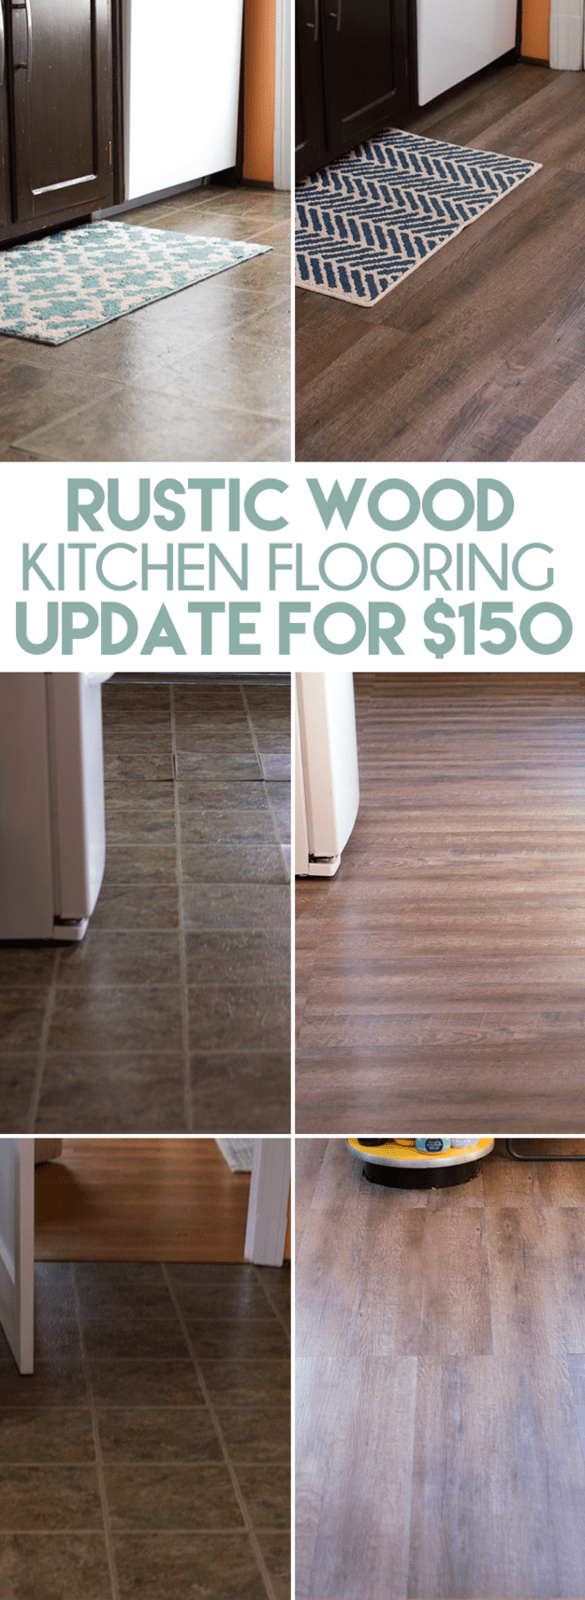 inexpensive rustic wood kitchen floors cheap kitchen flooring DIY Rustic Wood Plank Flooring for Cheap How we replaced our kitchen flooring with